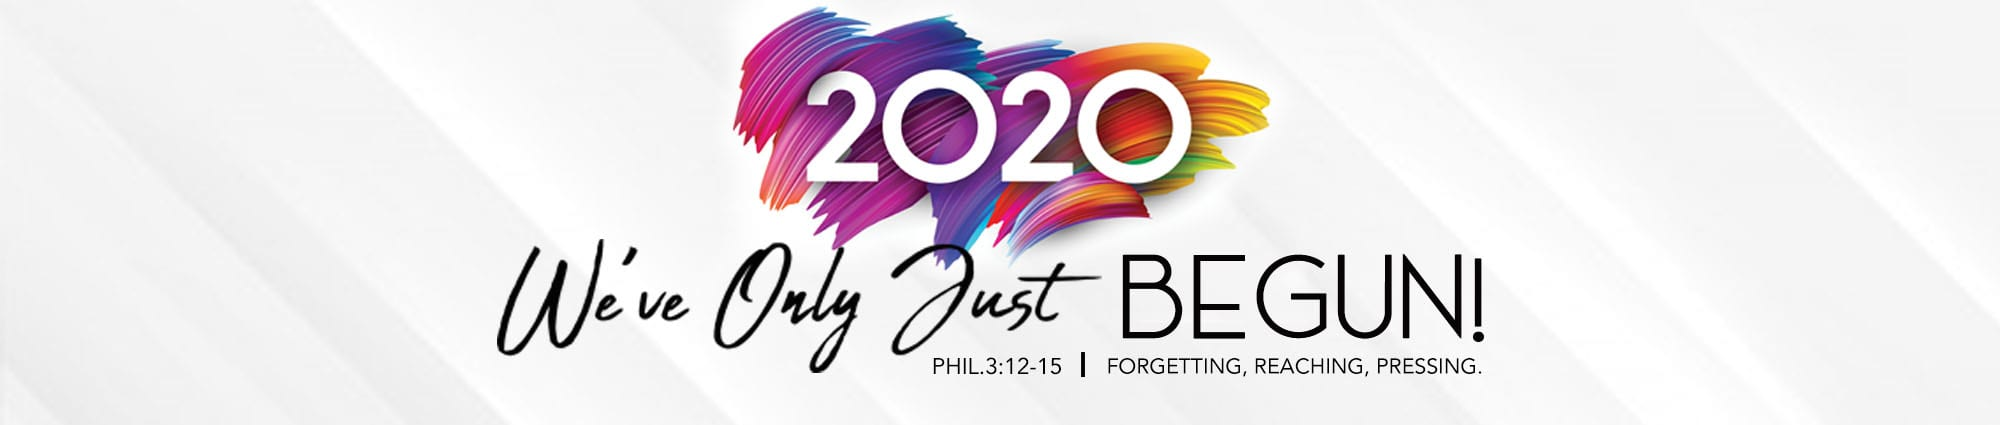 2020 Year Theme Web Banner